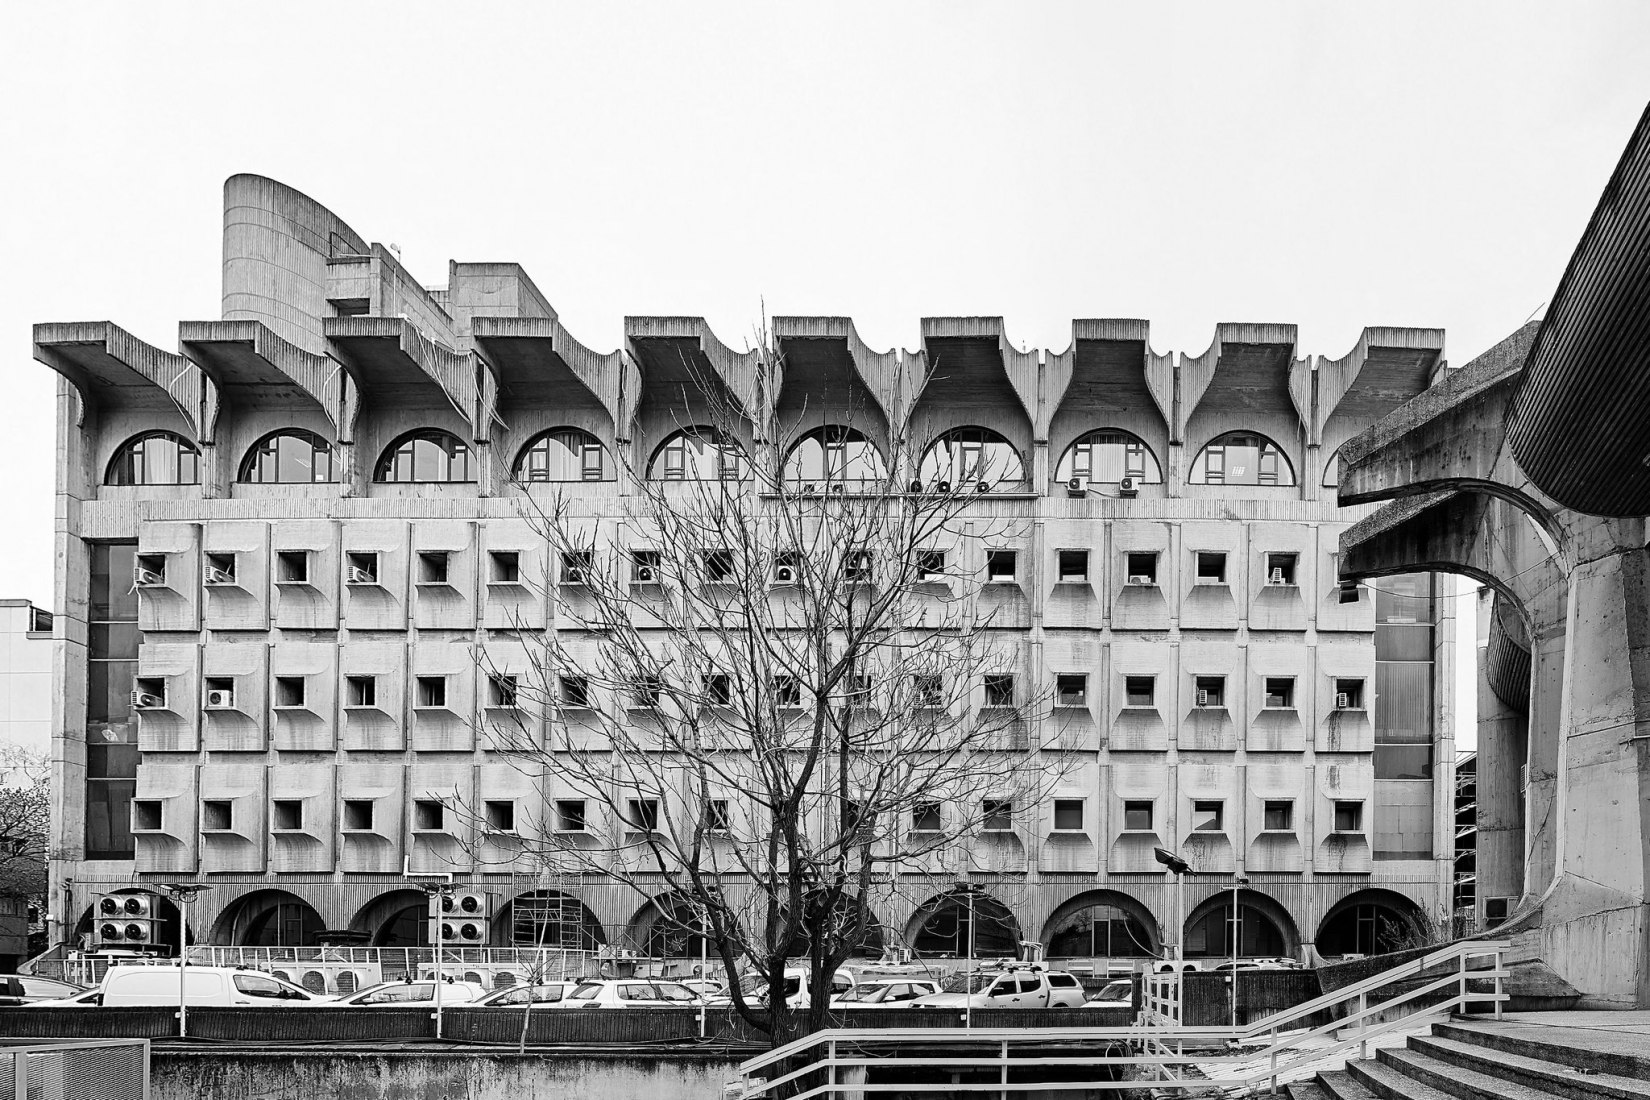 Macedonian Telekom, the Central Post Office of Skopje (Janko Konstantinov, 1974). Photograph by Vase Amanito for Blue Crow Media